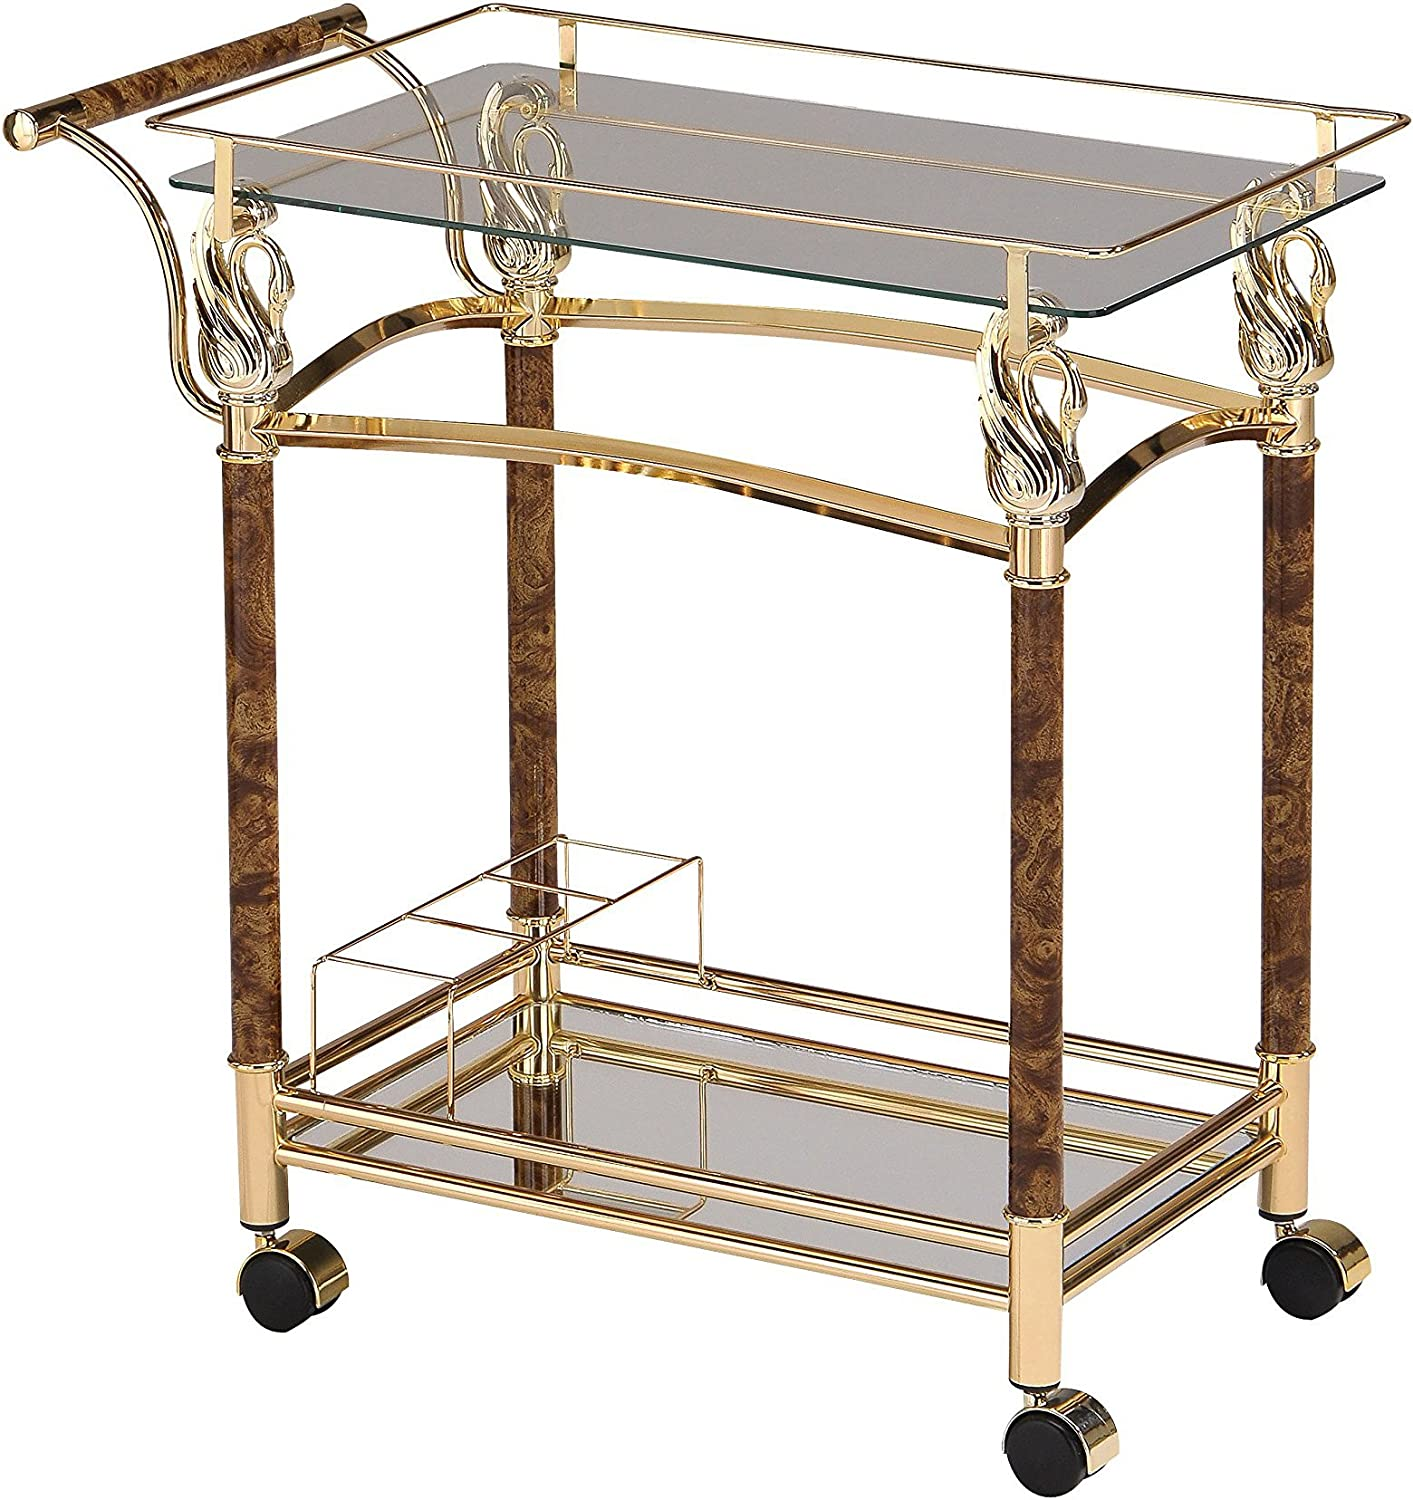 ACME Furniture 98002 Helmut Serving Gl Plated Golden Cart Clear Be Don't miss the campaign super welcome